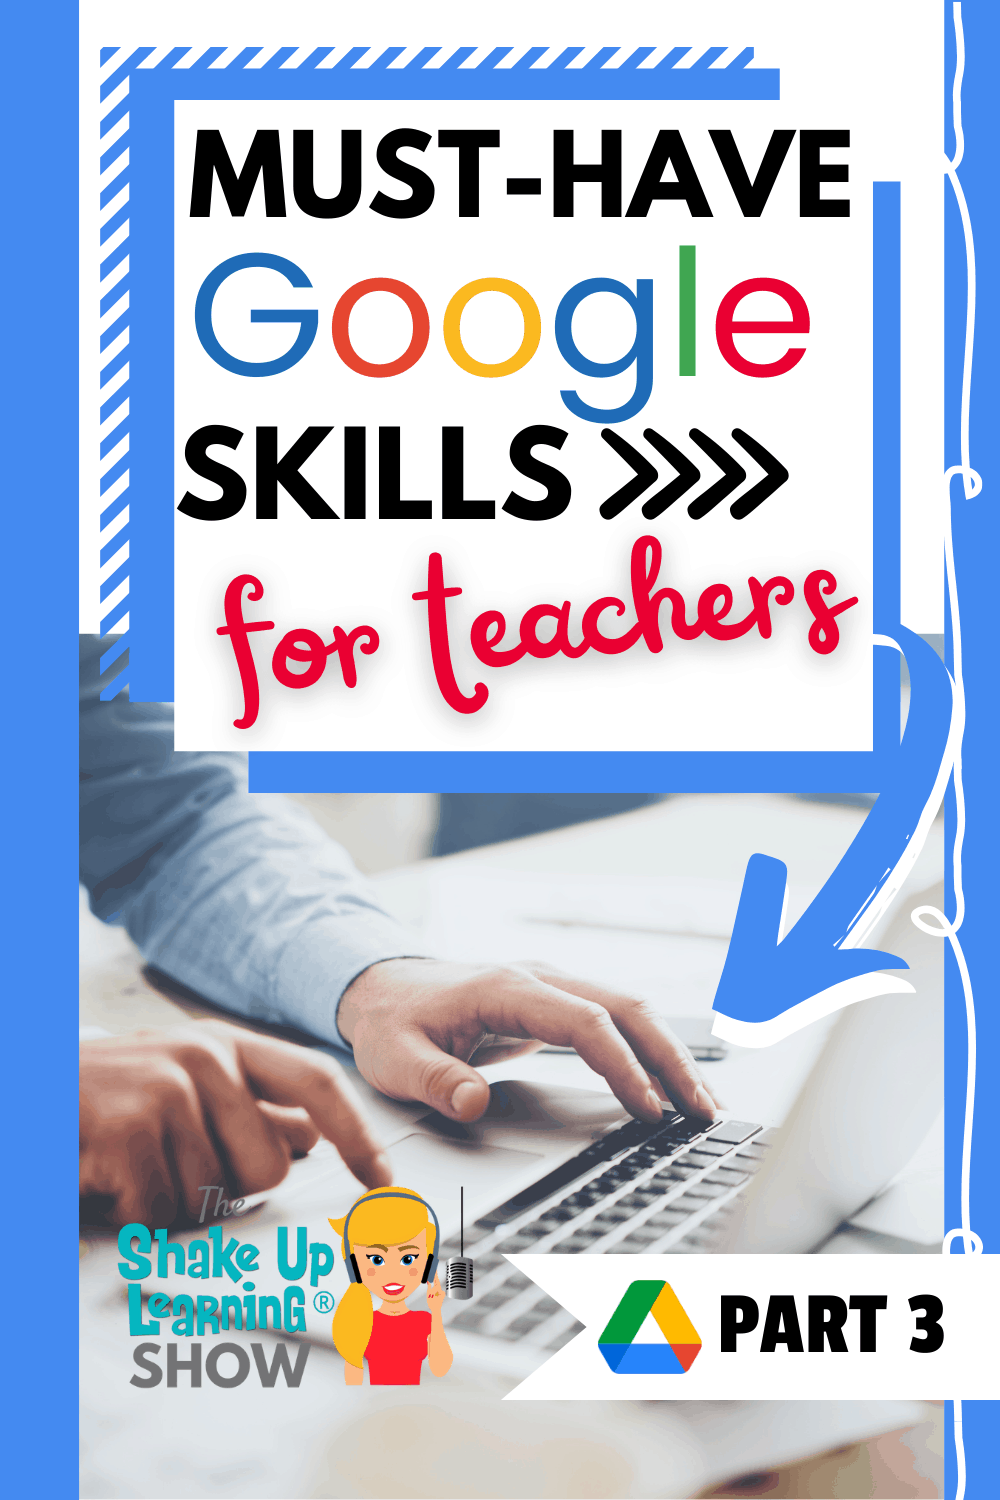 Must-Have Google Skills for Teachers (Part 3 - Google Drive) - SULS0105